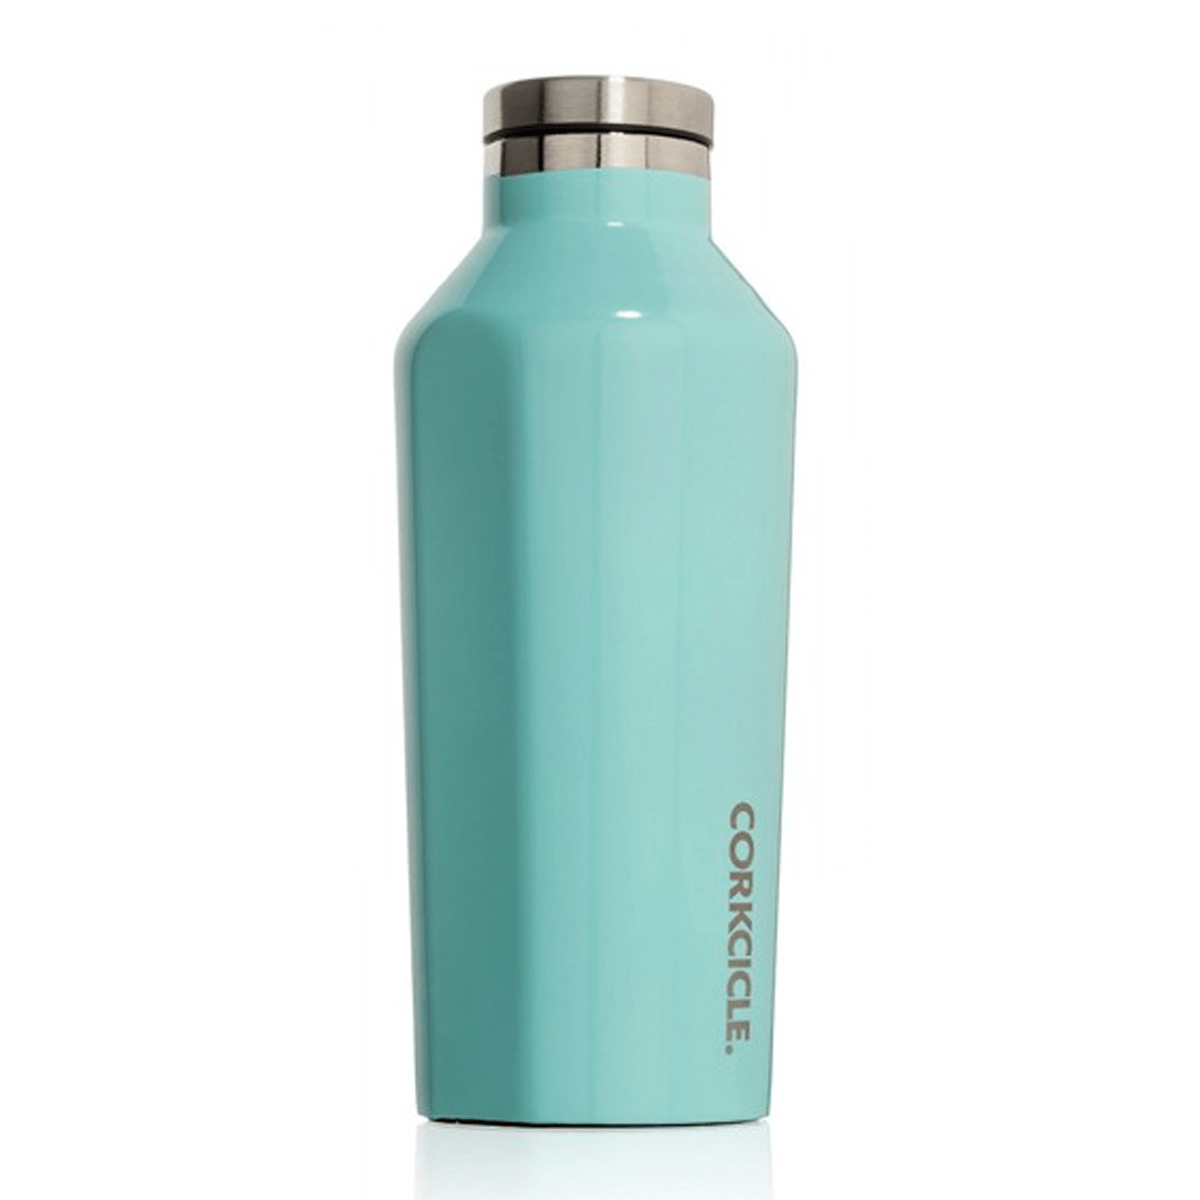 Corkcicle Canteen Vacuum Flask, Turquoise